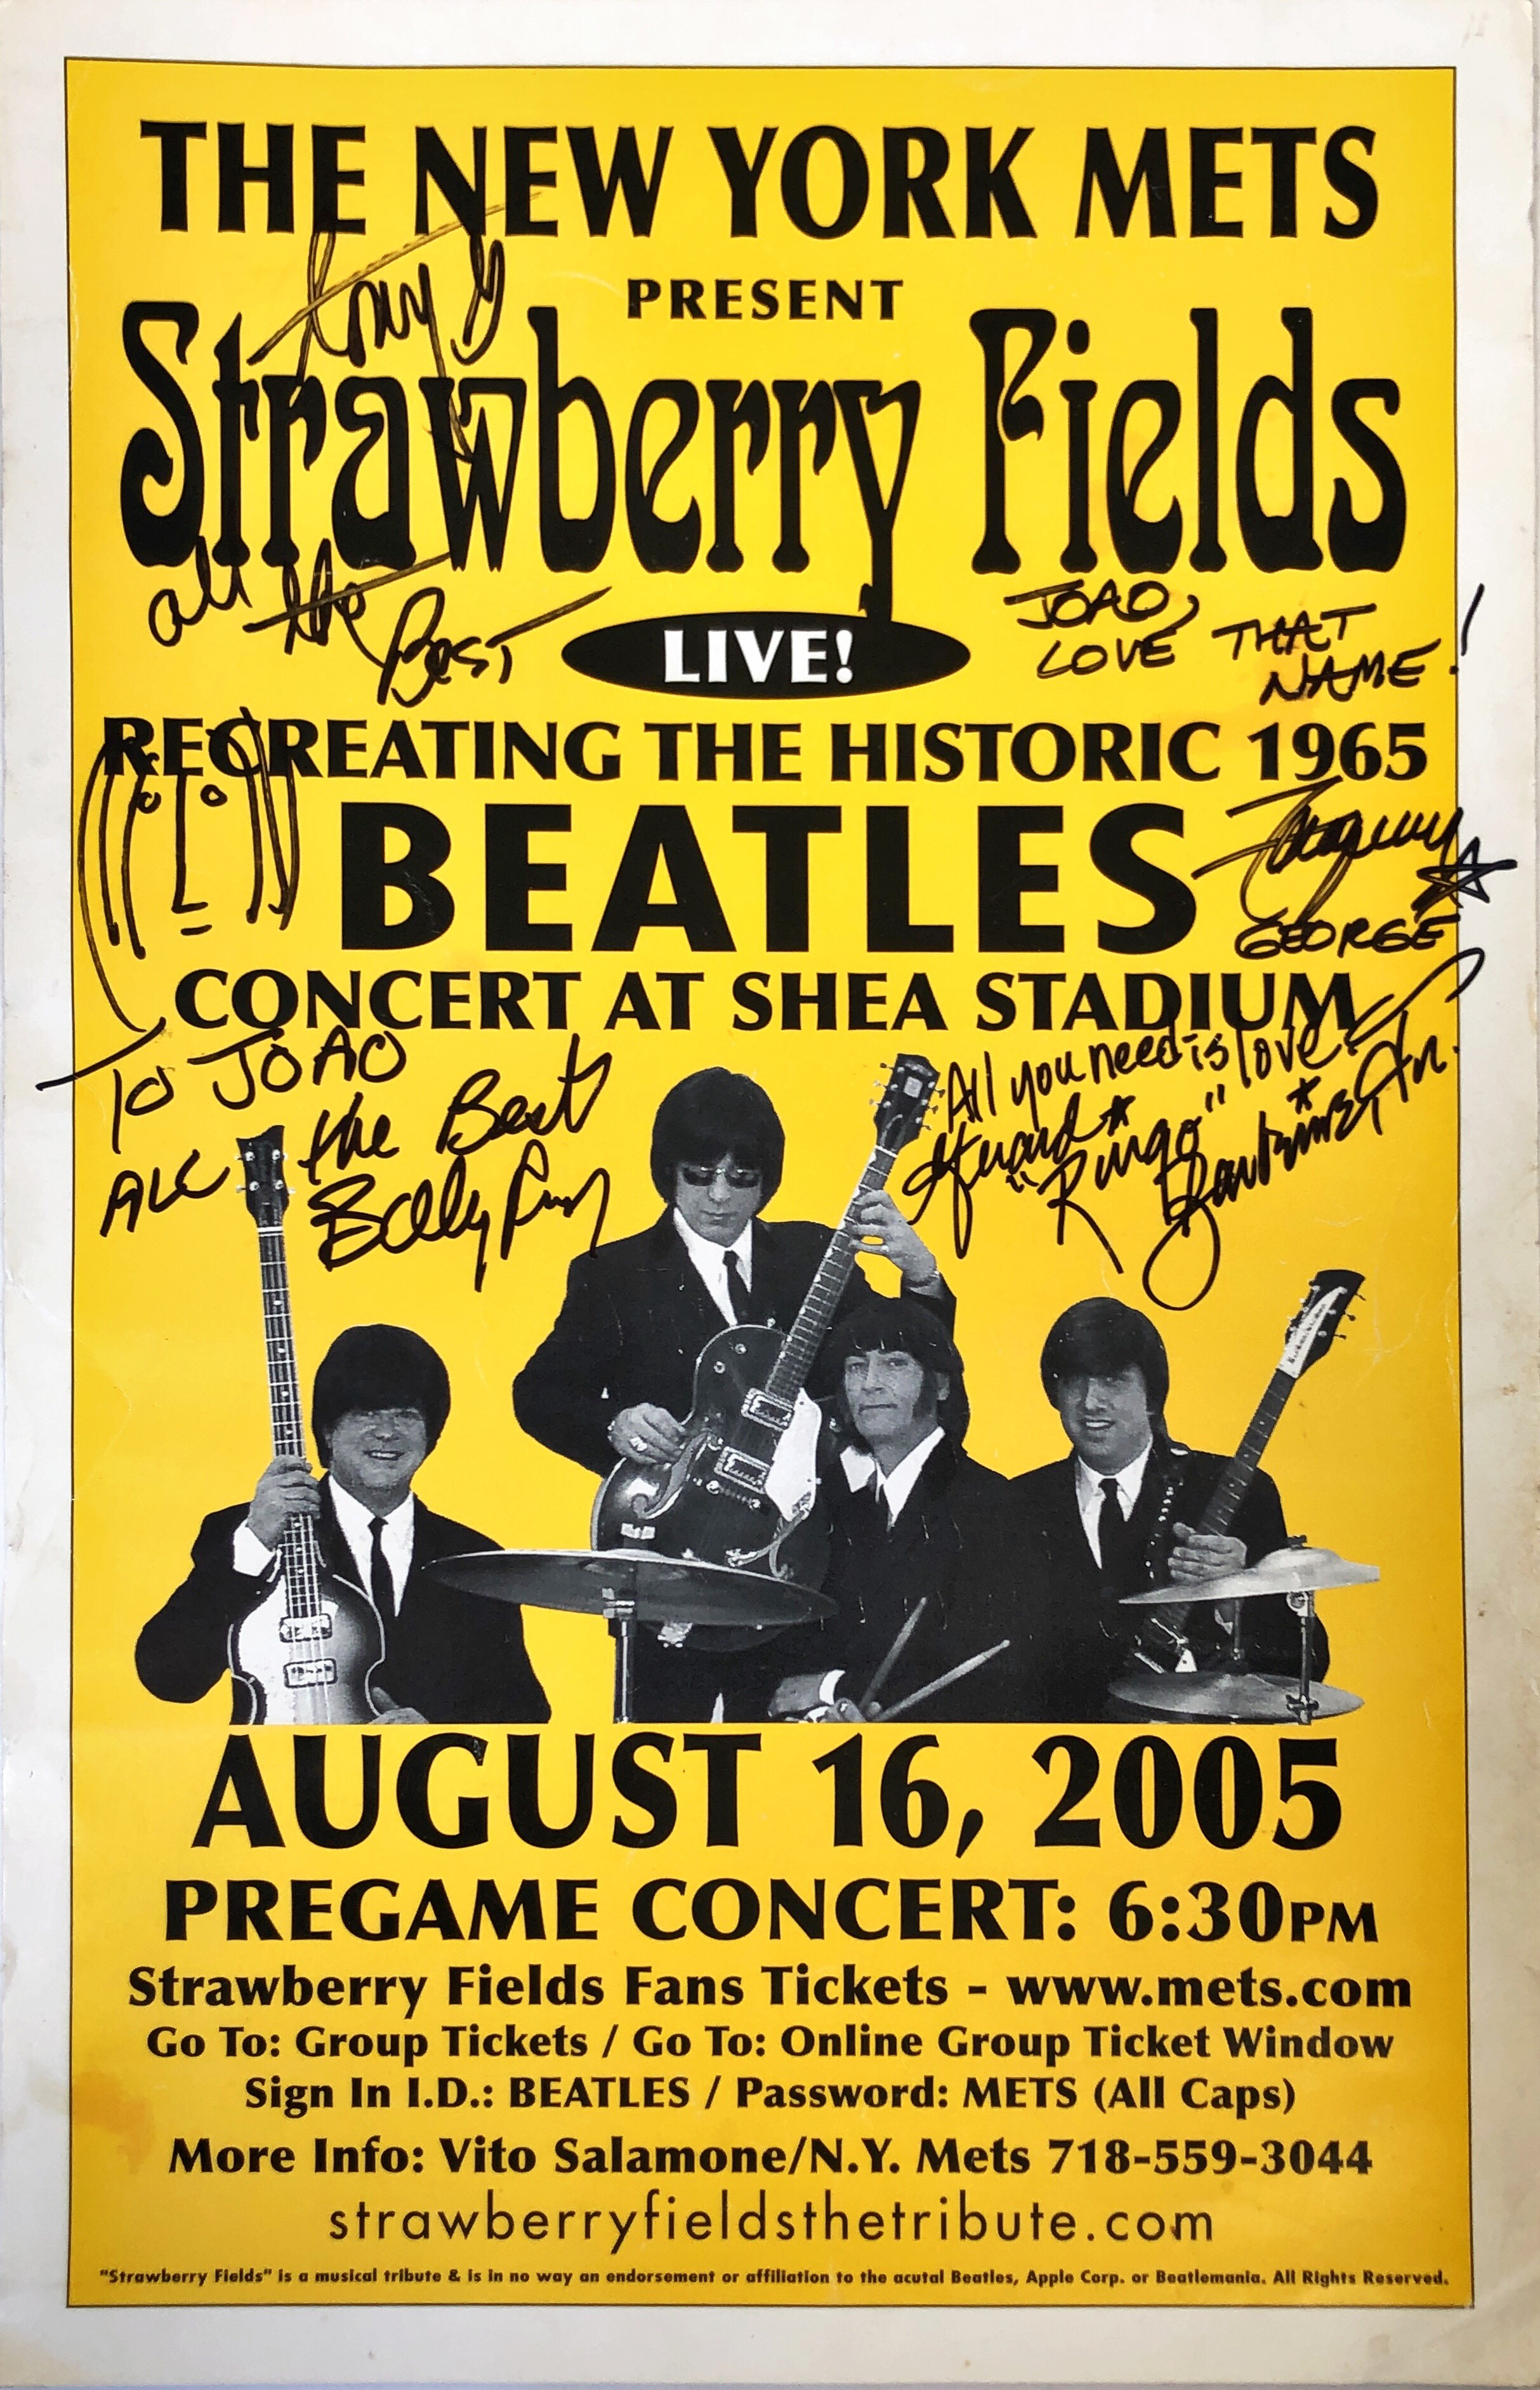 Strawberry Fields Forever Recreating The Historic 1965 Beatles Concert At Shea Stadium Nova Iorque 16 De Agosto De 2005 Cartaz E Autógrafos Ephemera Biblioteca E Arquivo De José Pacheco Pereira